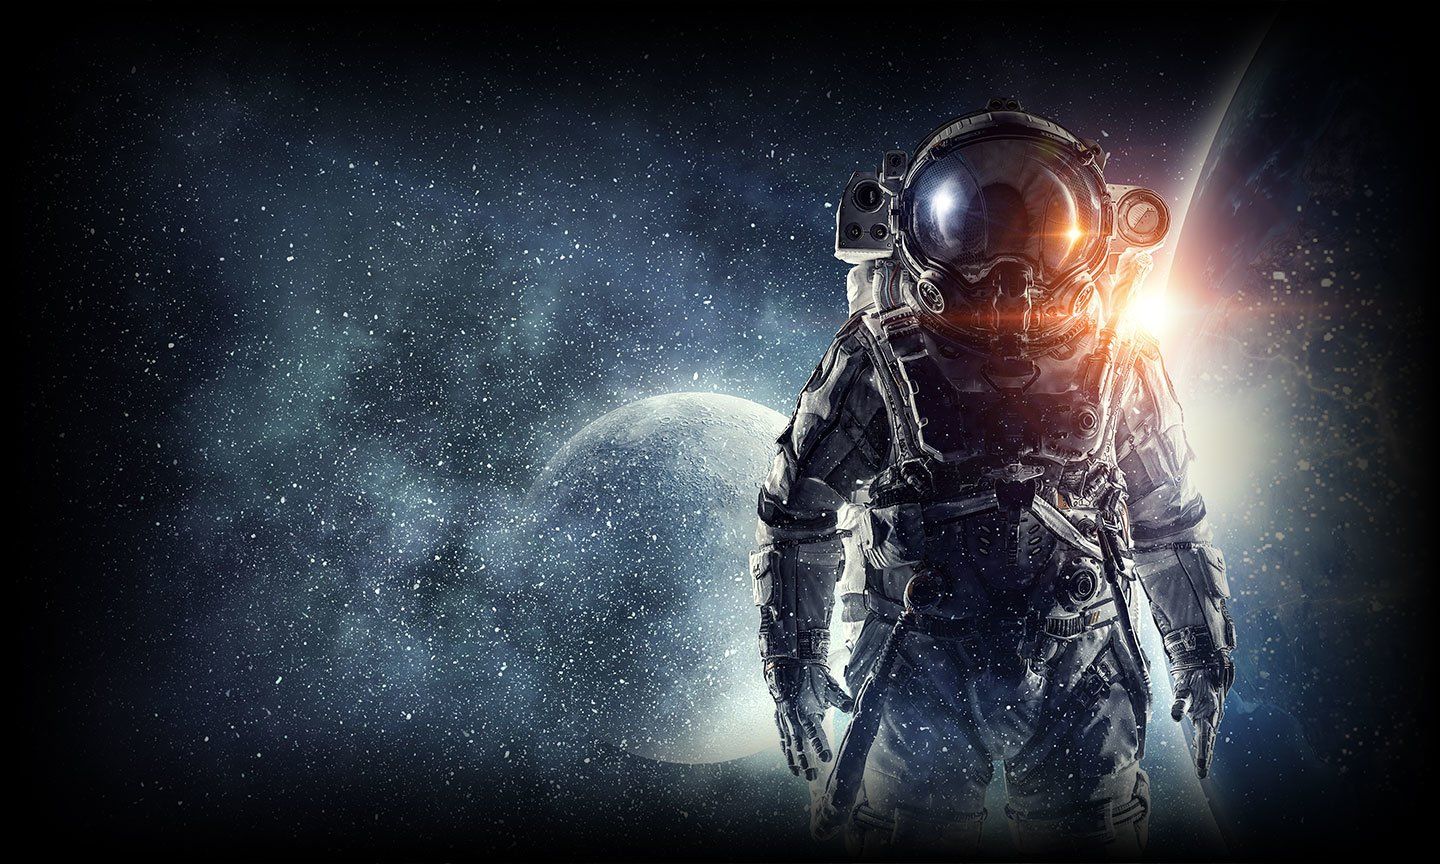 Astronaut facing the viewer